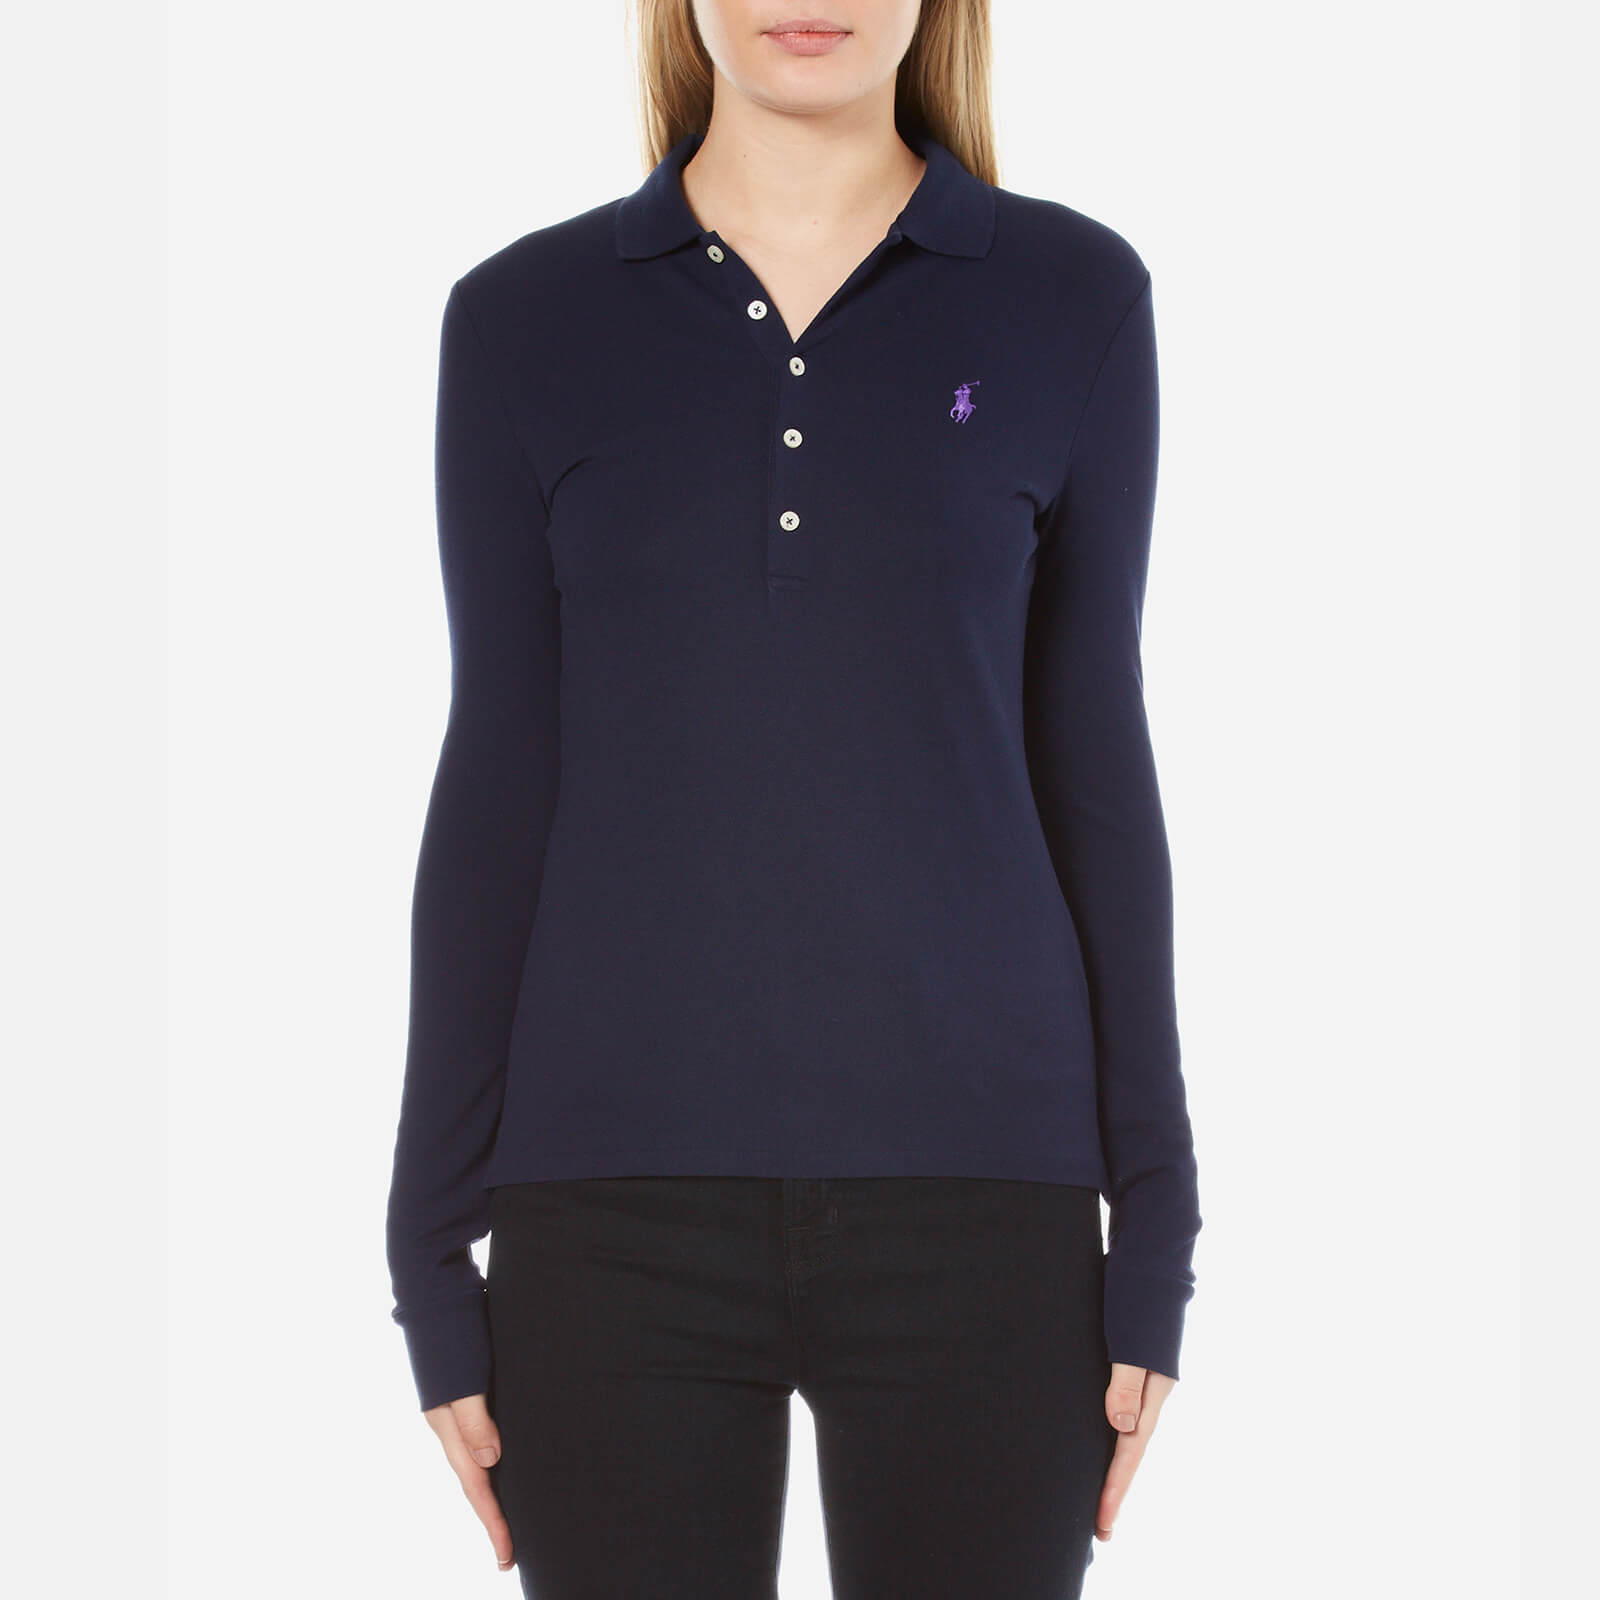 cbad7593befd Polo Ralph Lauren Women's Long Sleeve Julie Polo Shirt - Cruise Navy - Free  UK Delivery over £50